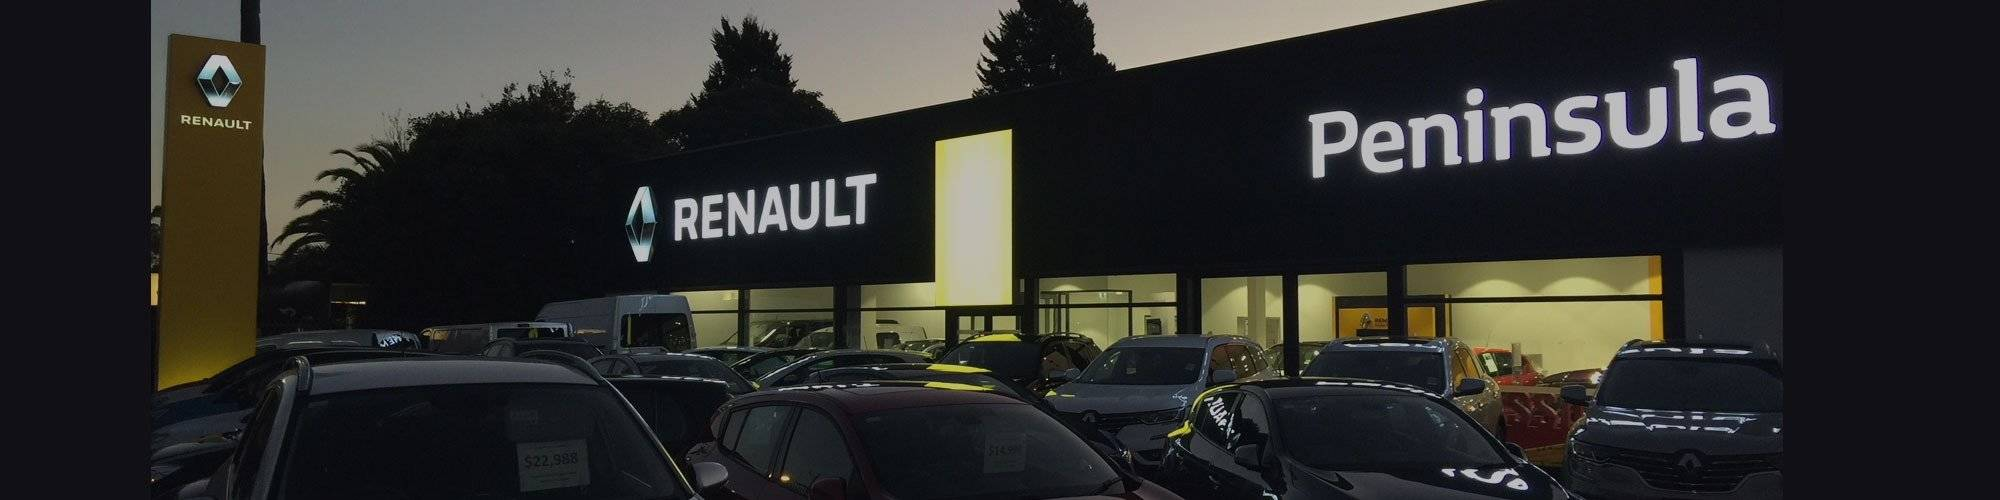 Peninsula Renault Dealership Banner